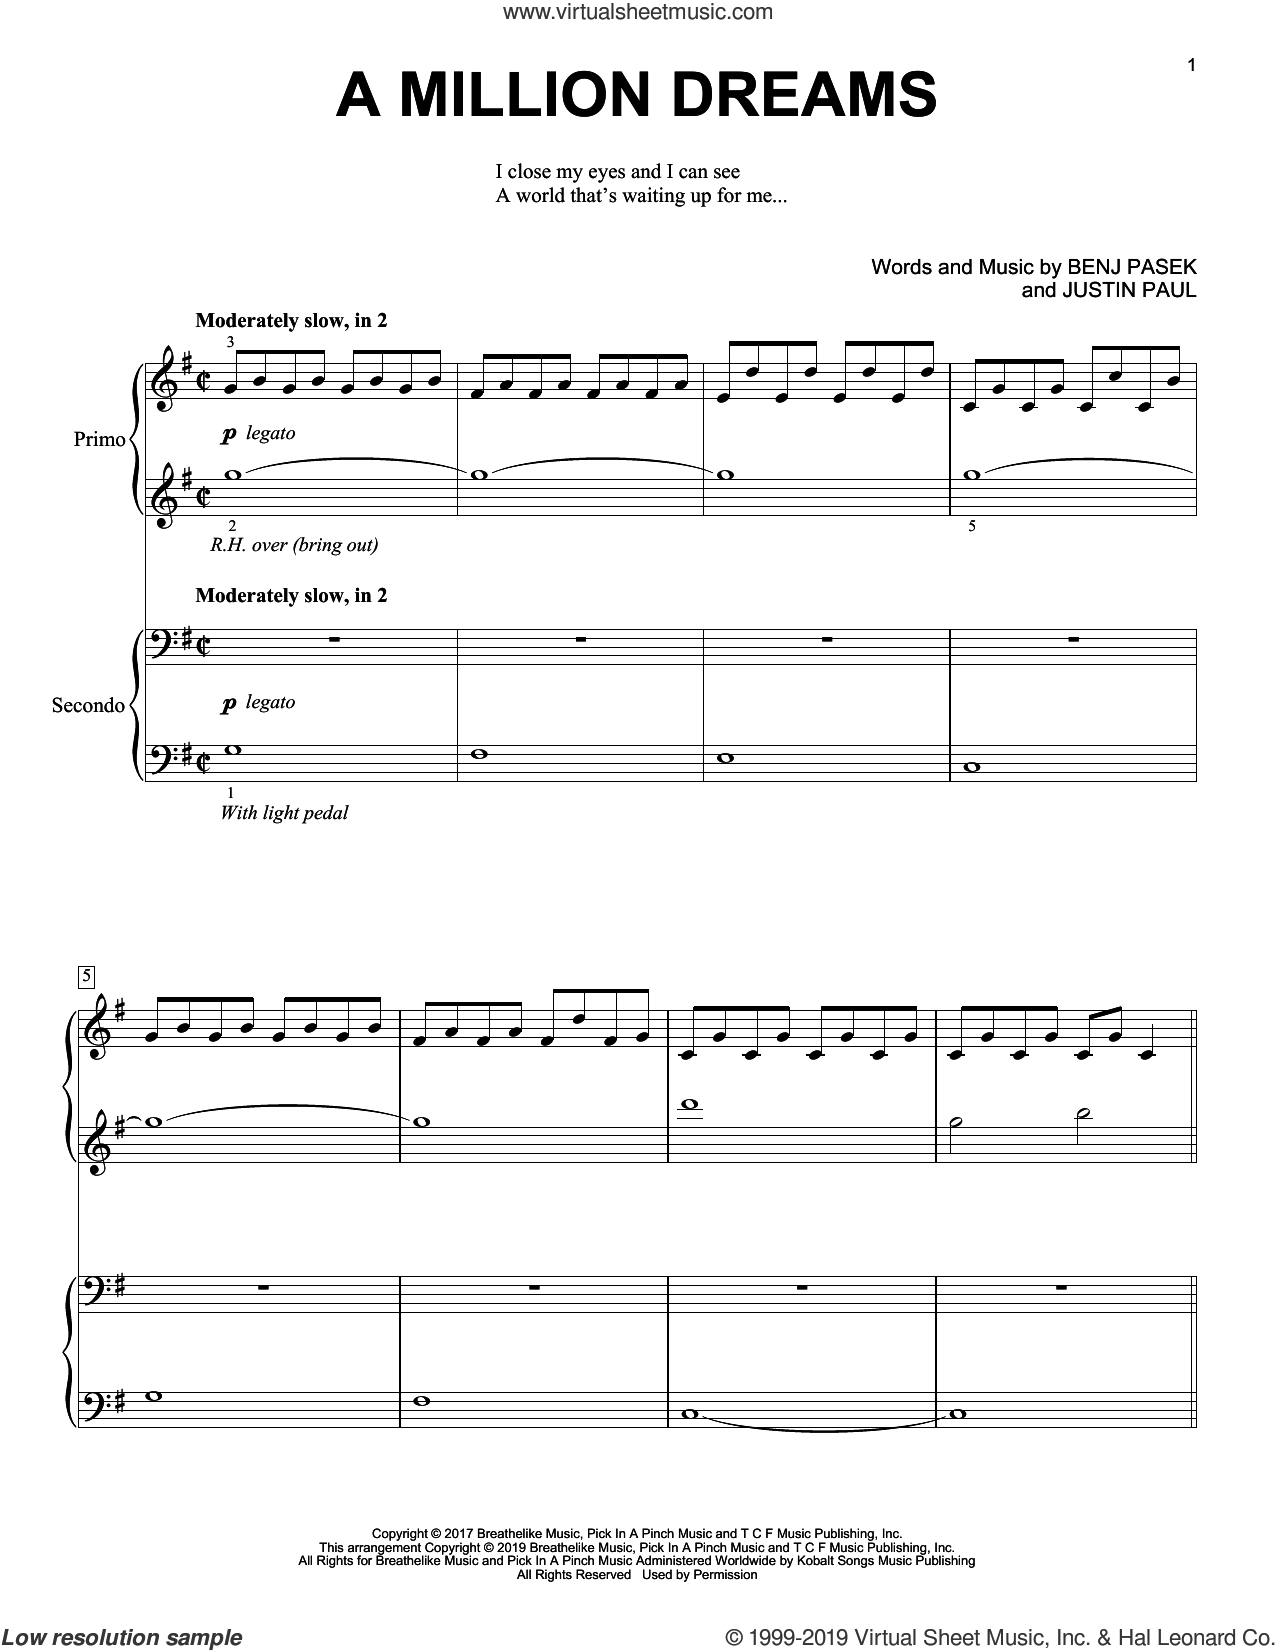 A Million Dreams (from The Greatest Showman) sheet music for piano four hands by Benj Pasek, Justin Paul and Pasek & Paul, intermediate skill level